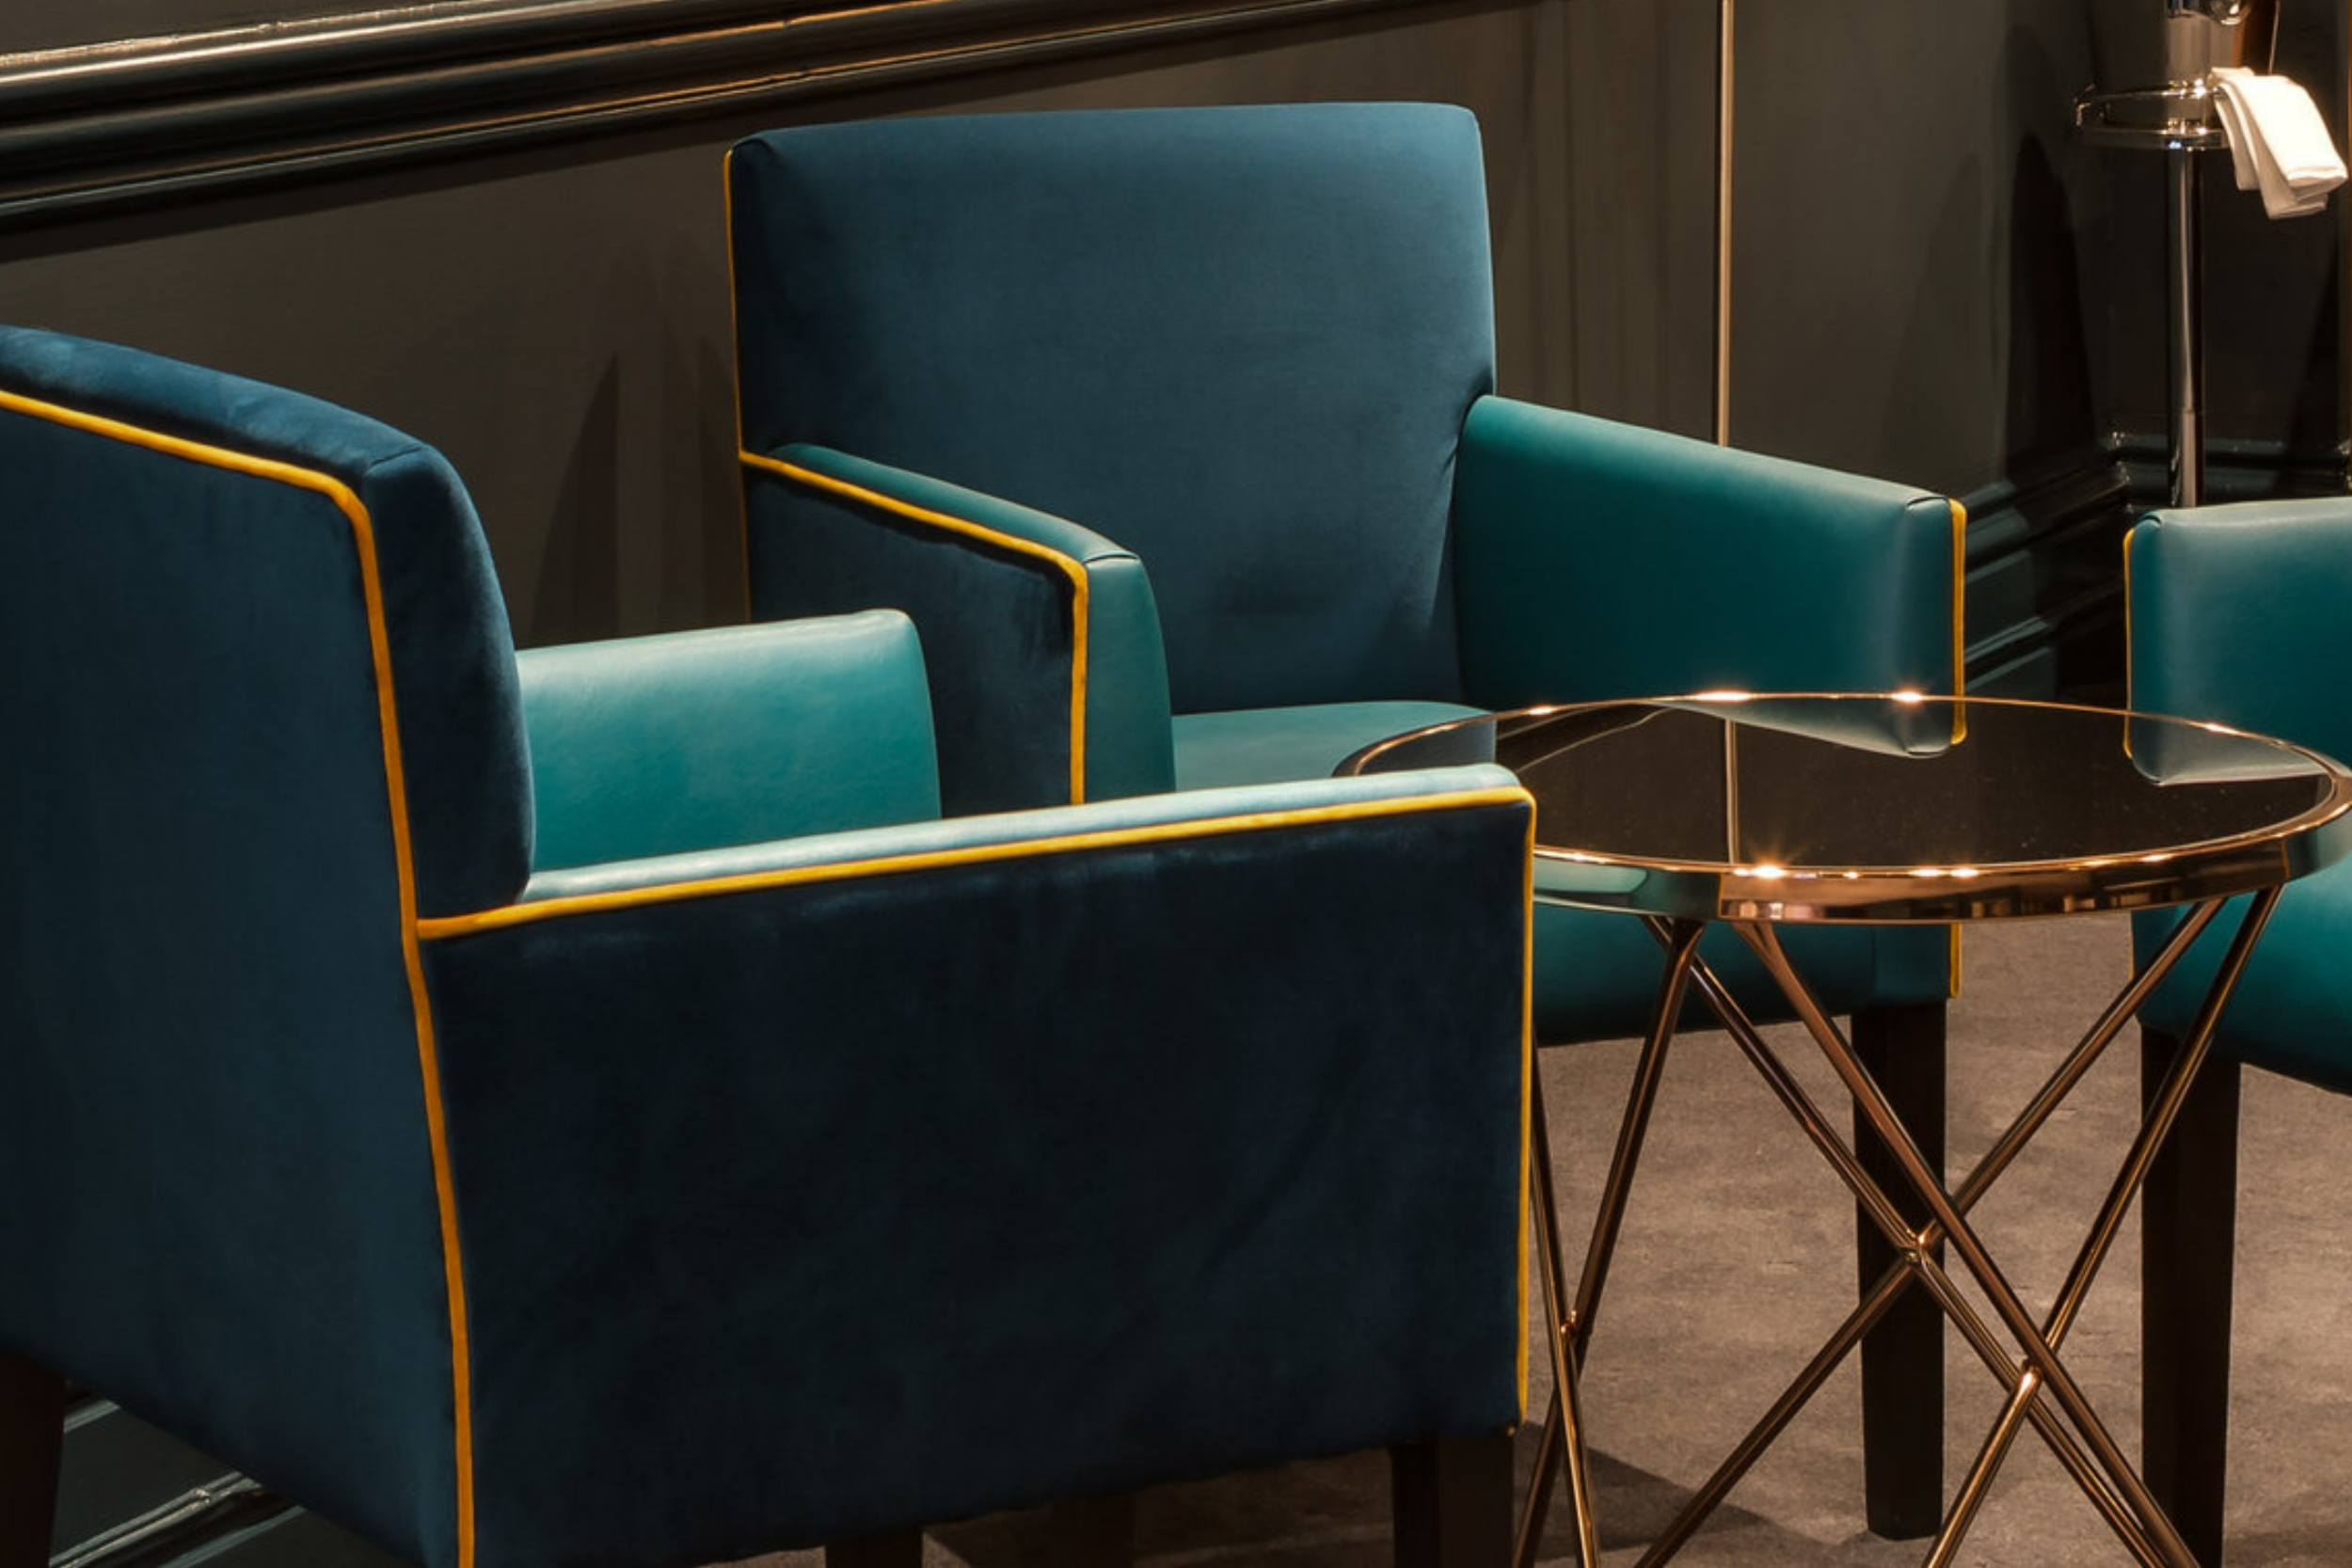 Detail of upholstered armchairs with brass table.